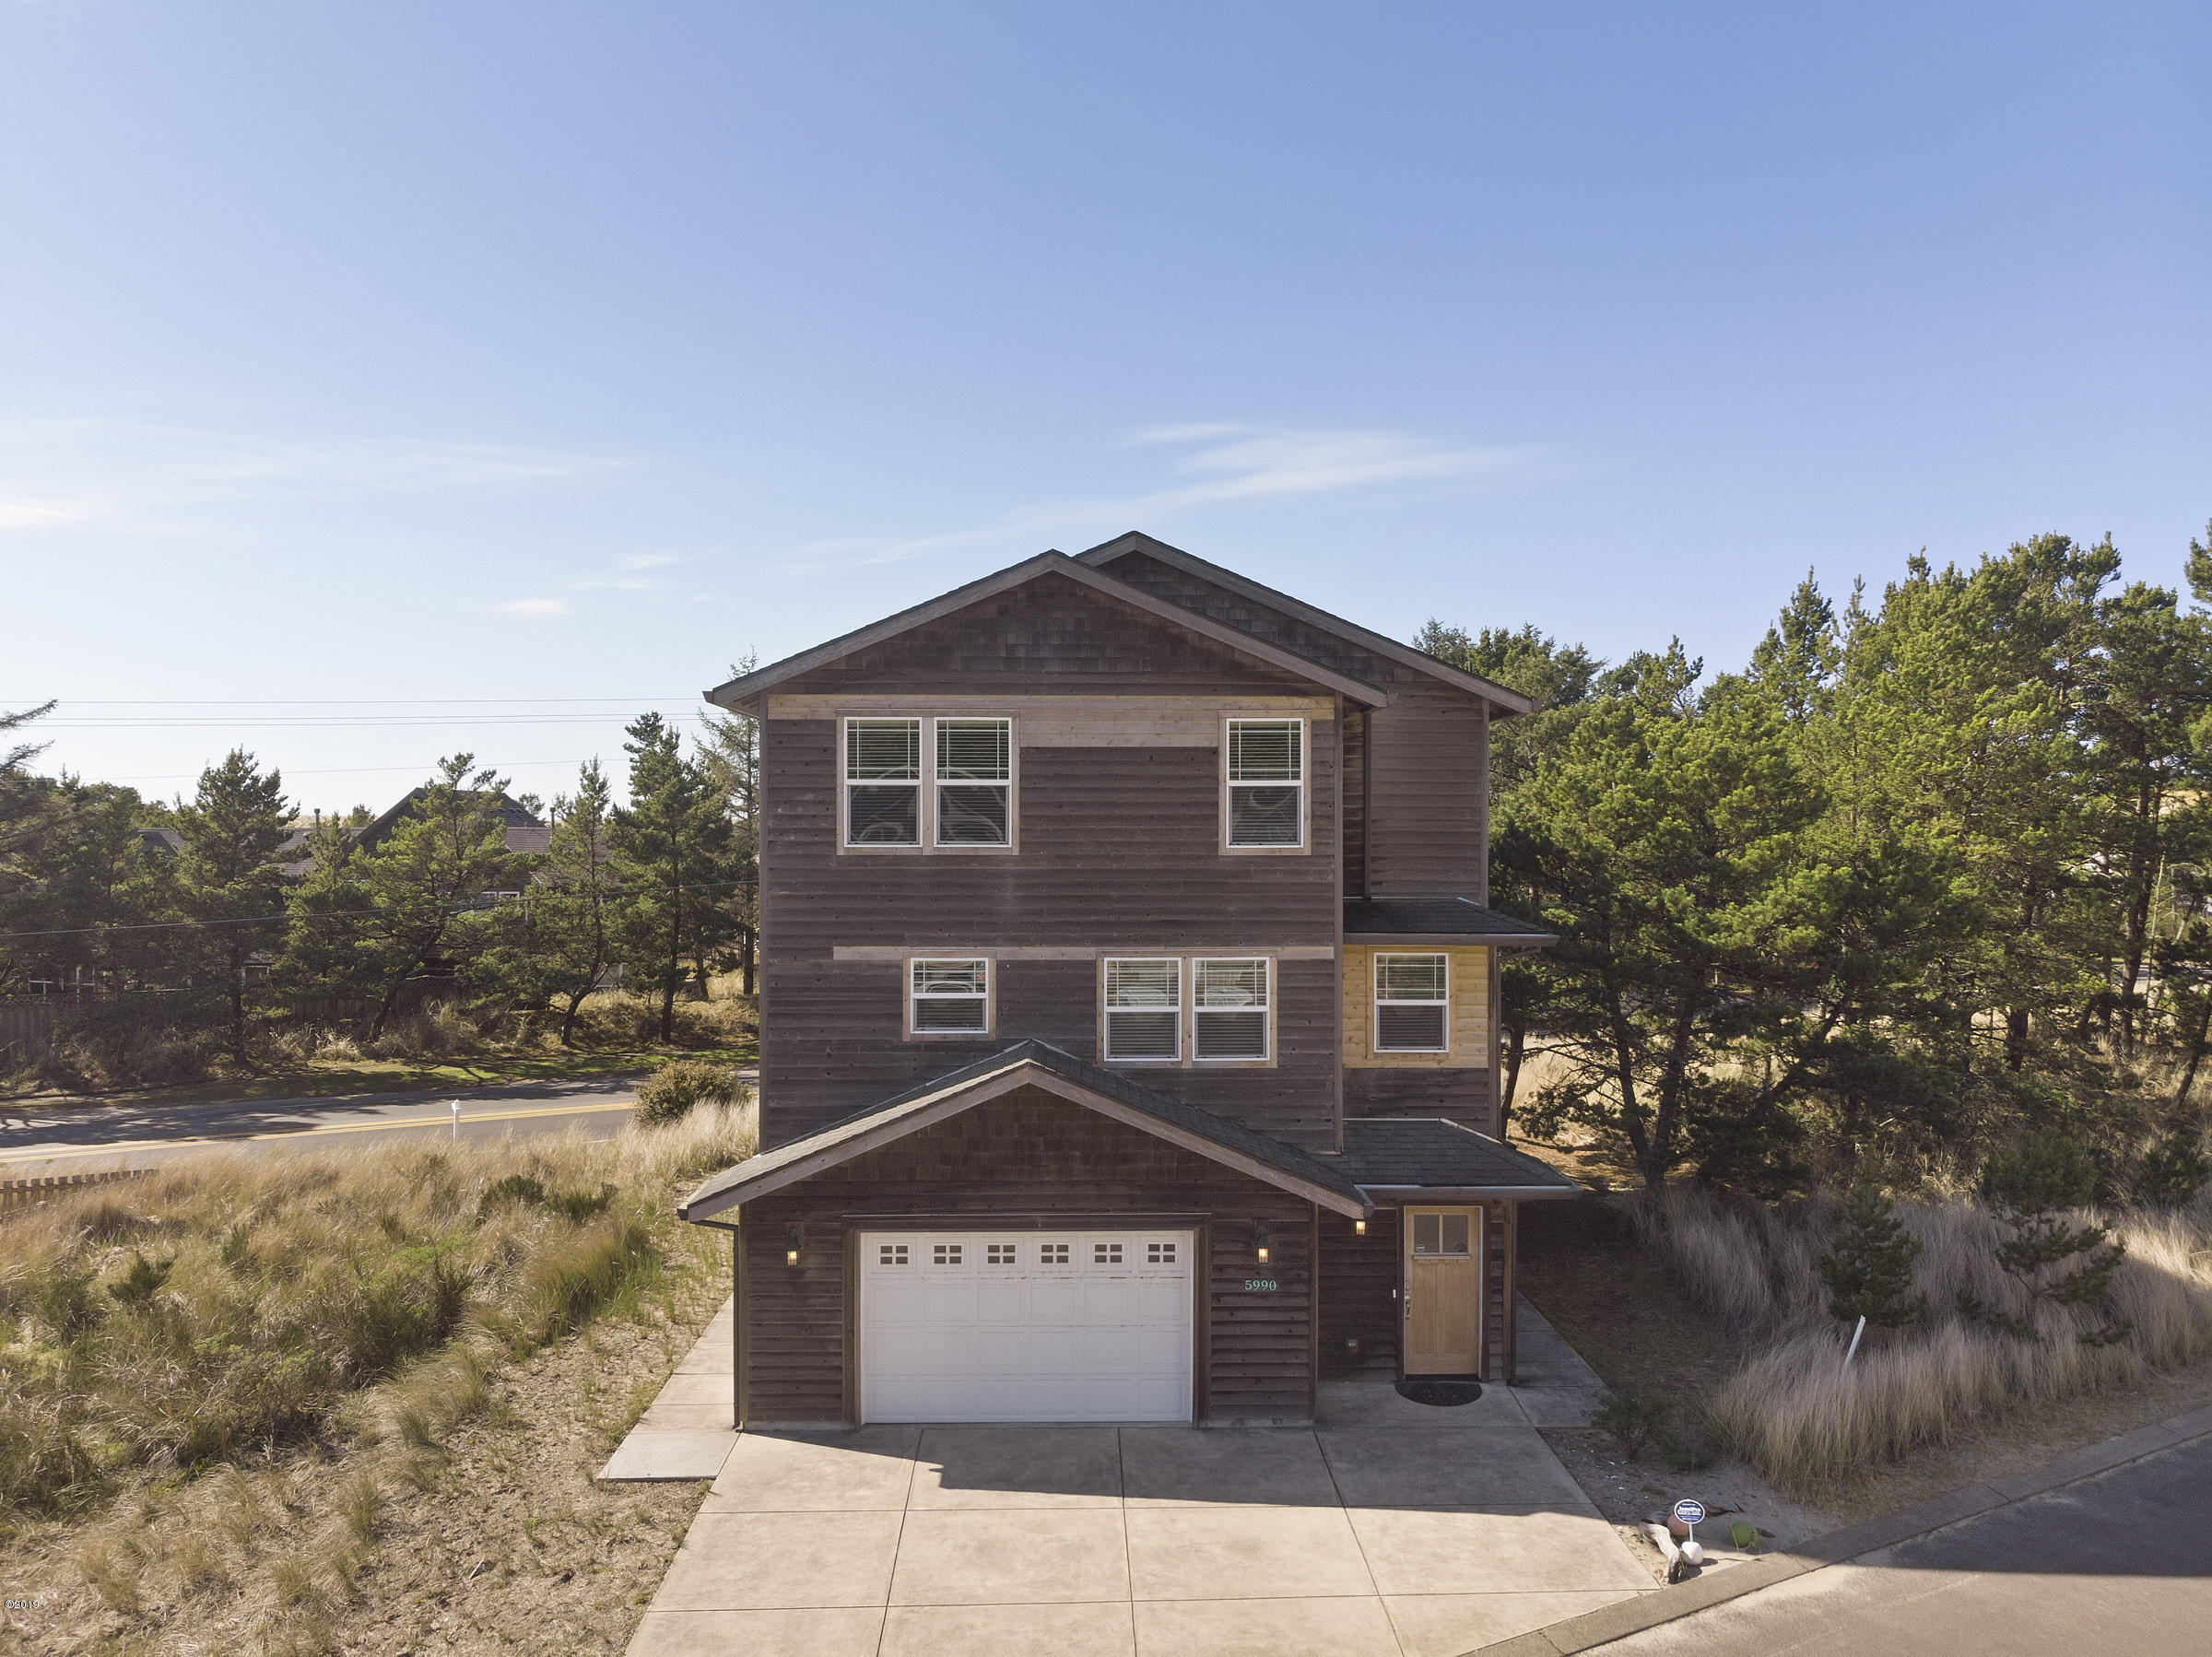 5990 Center Pointe Loop, Pacific City, OR 97135 - DJI_0255